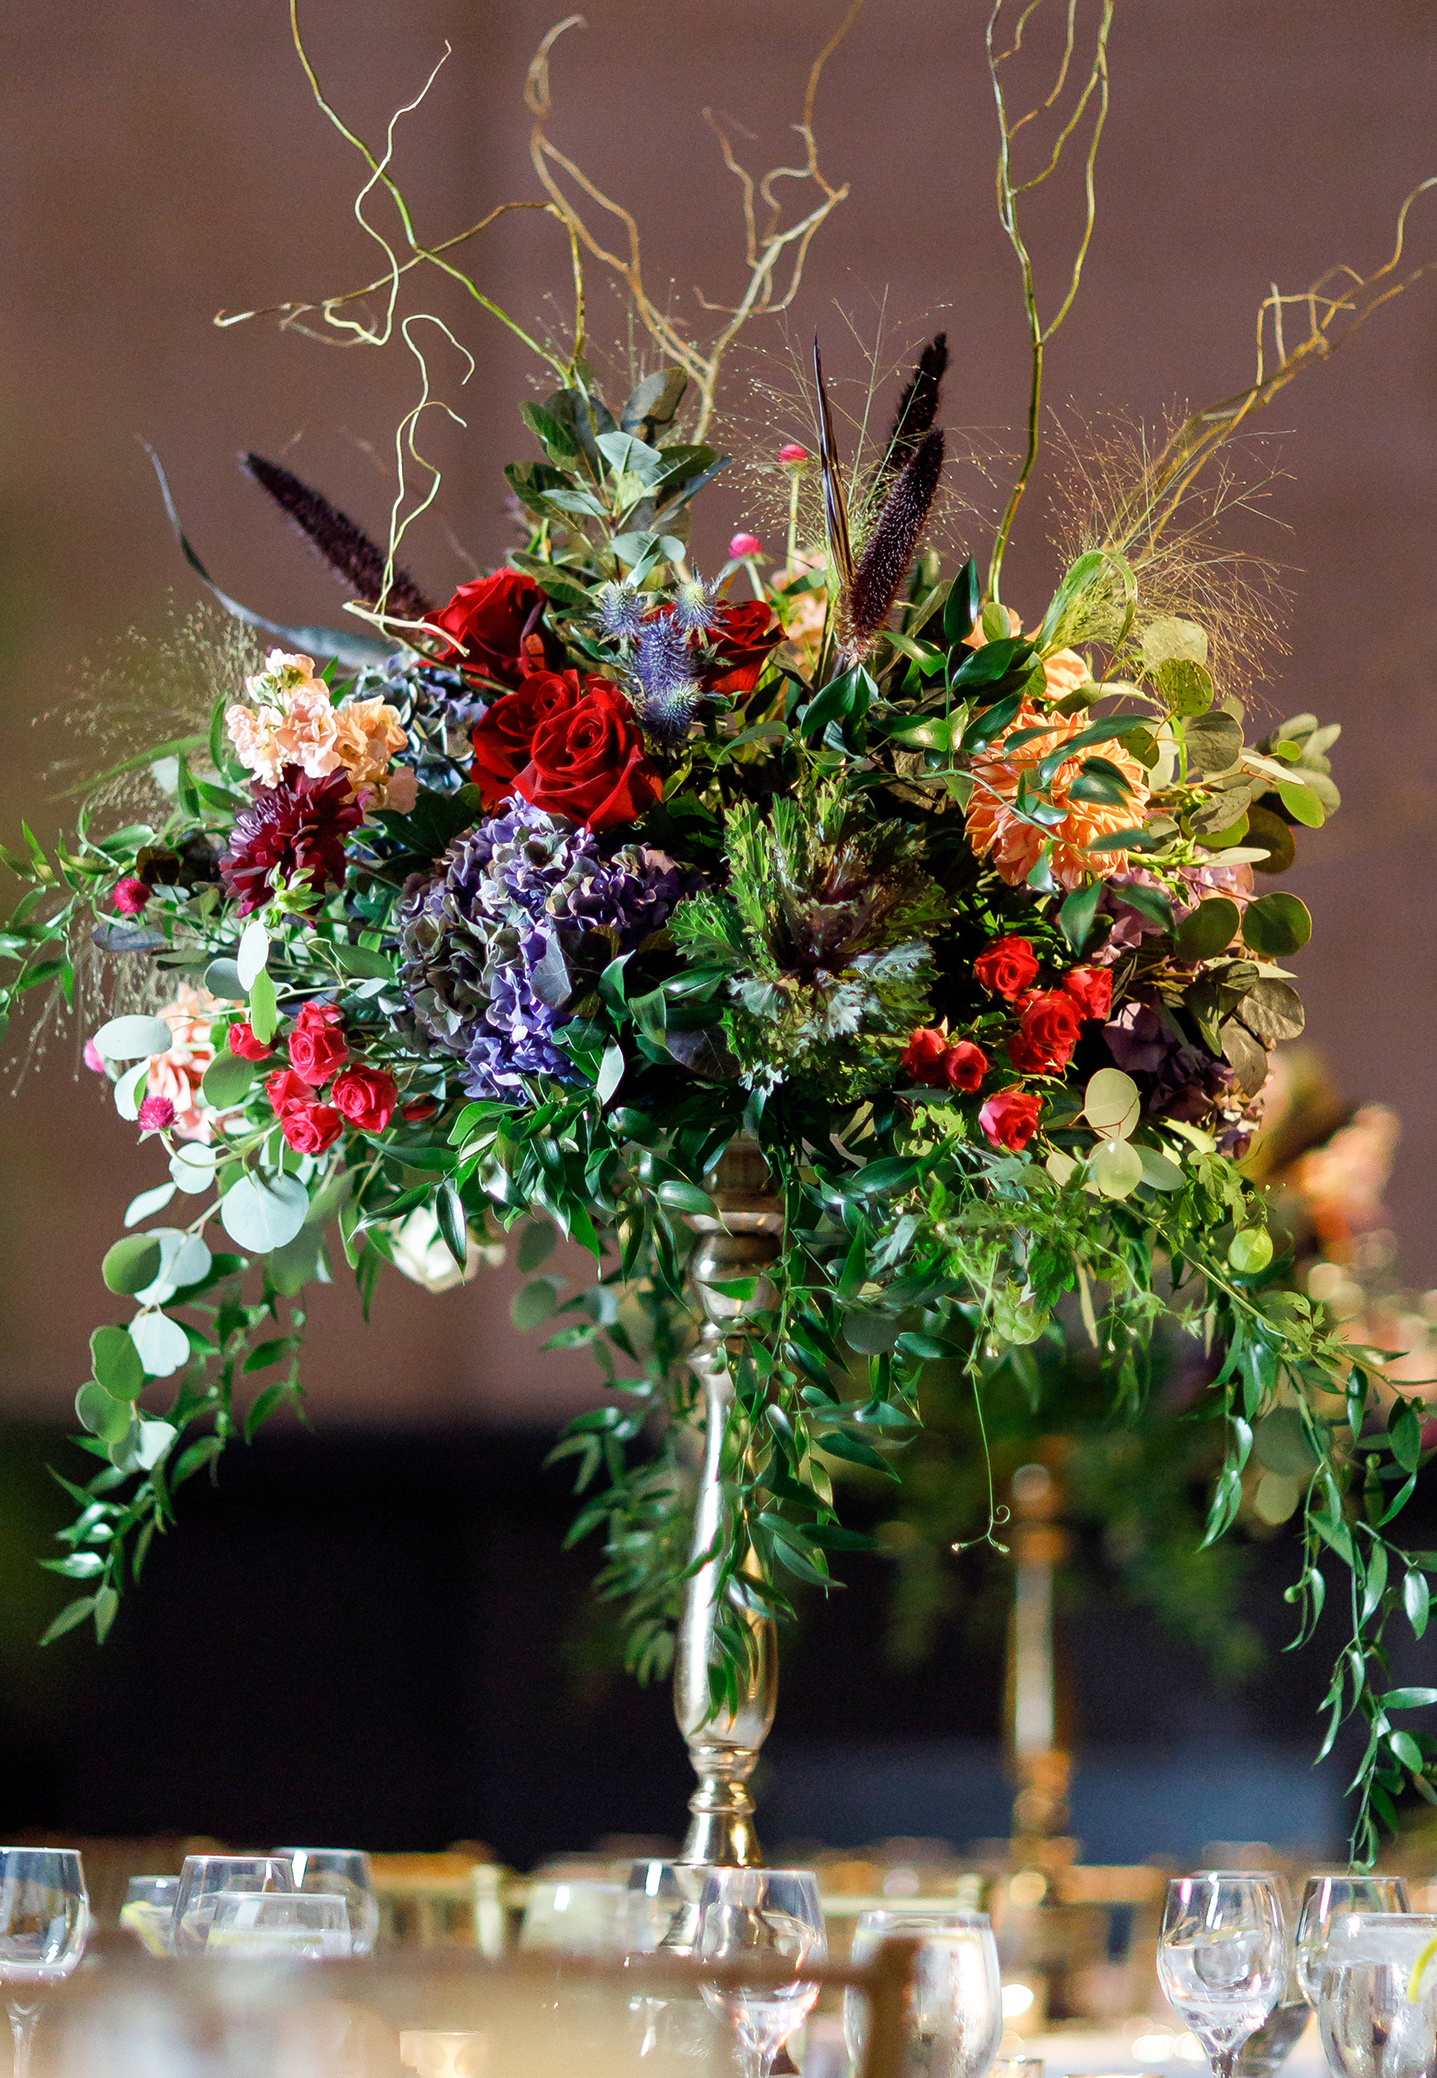 Tall wedding centerpiece in deep colorful autumn flowers and foliage with grasses and willow stems. A close-up view with brass pedestal risers on the reception tables for unique floral inspiration.